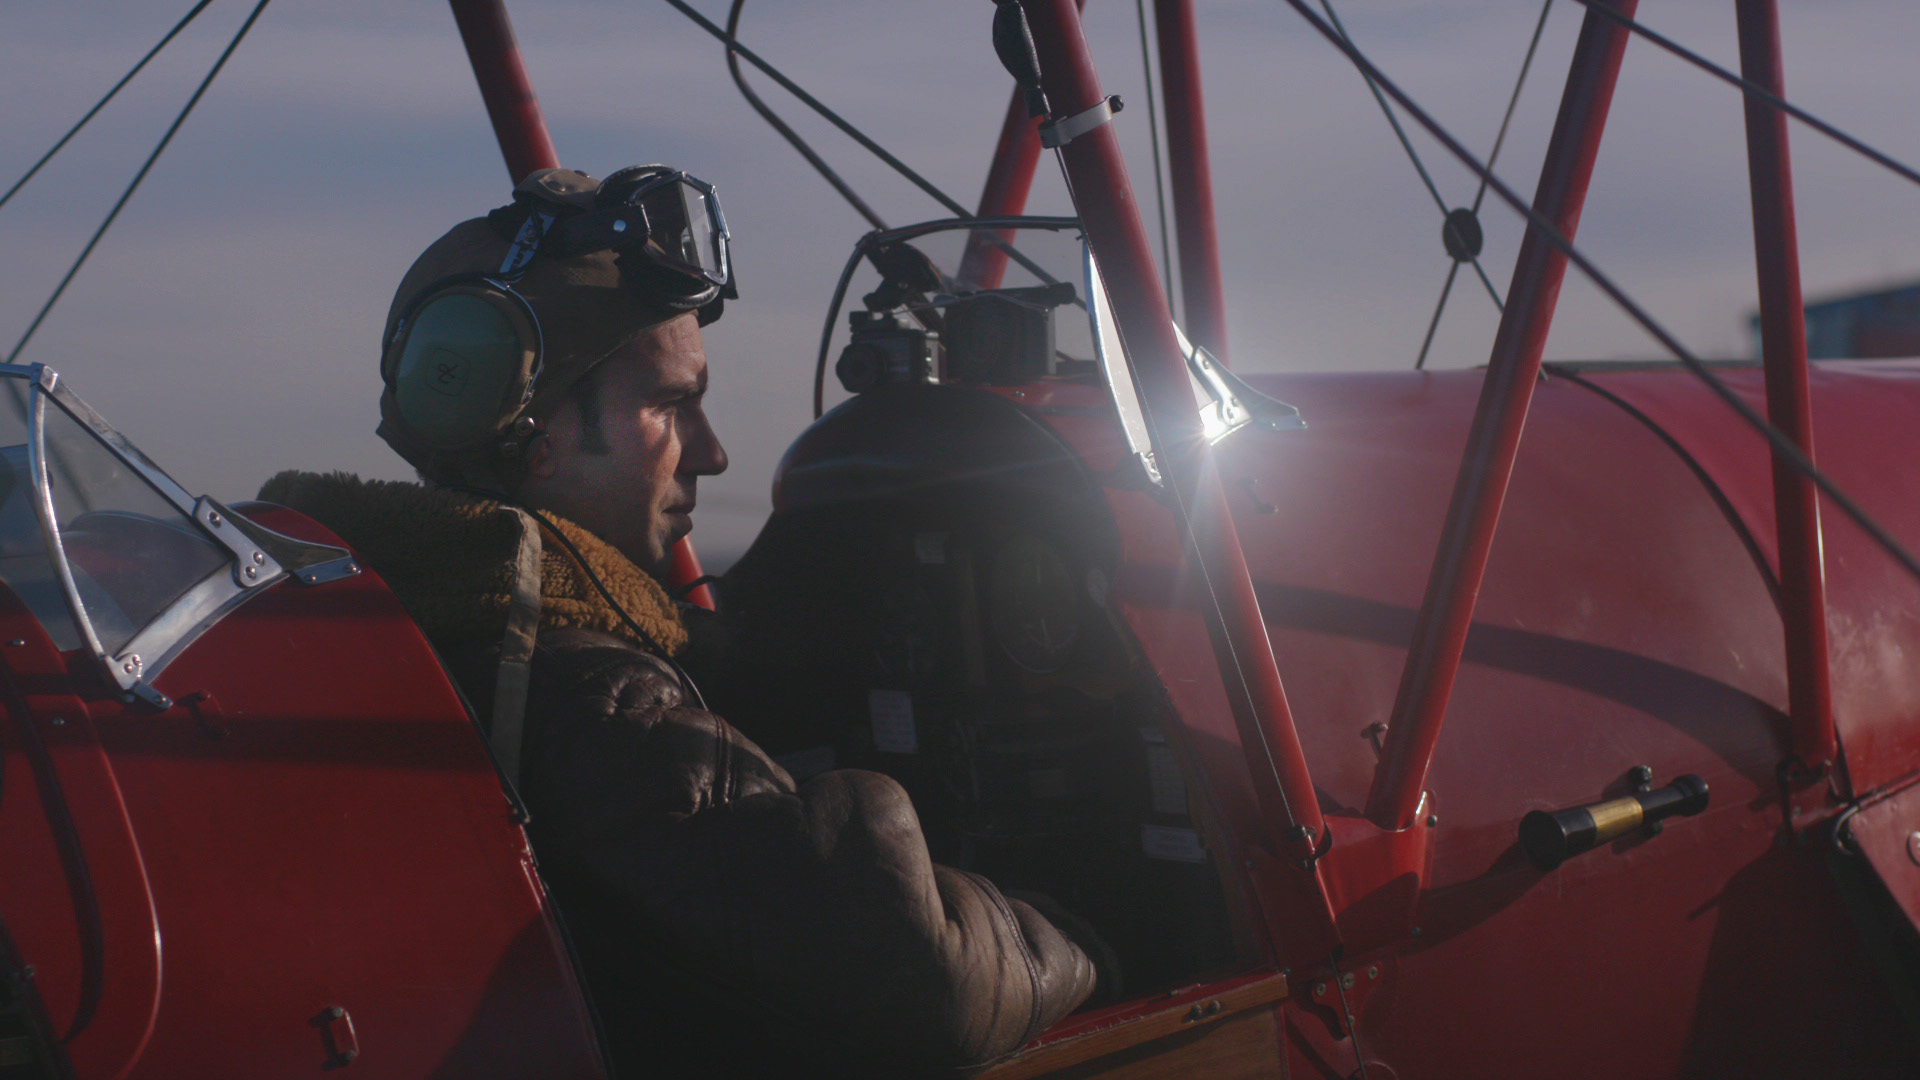 James Crawford ready for take off in new BBC show